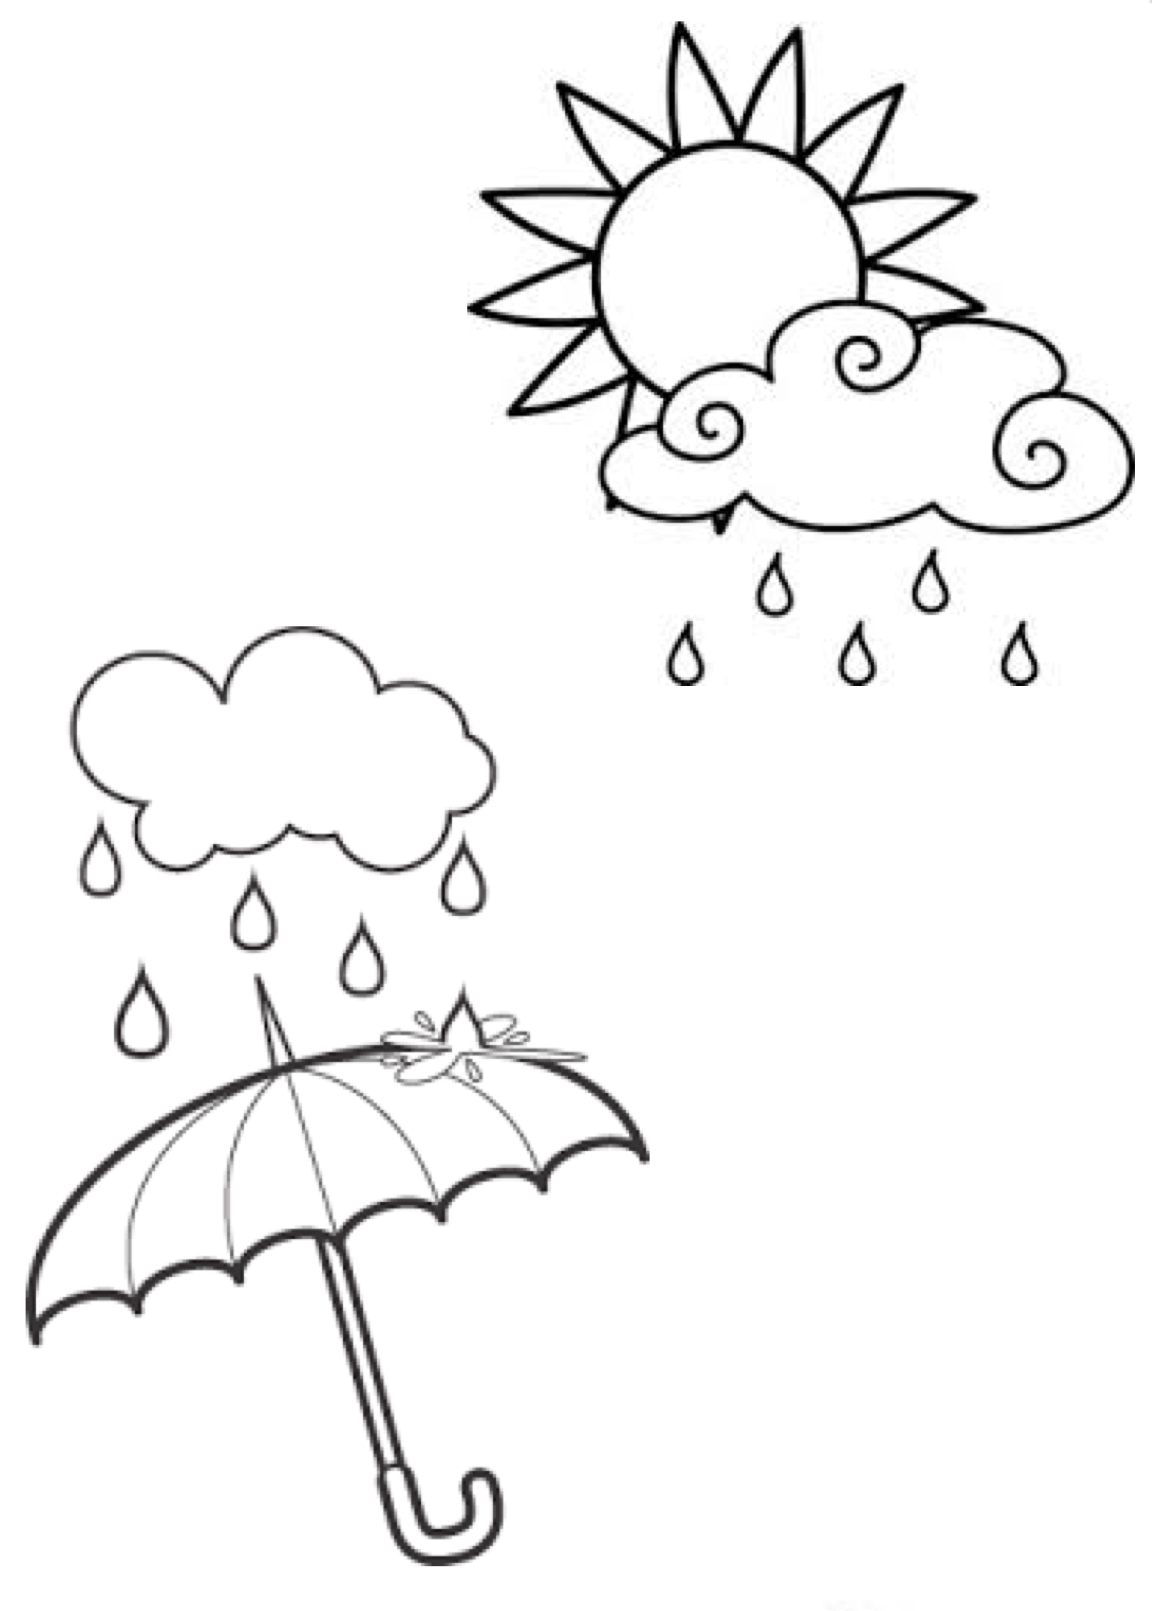 Umbrella Clipart Coloring Pages And More Free Printable